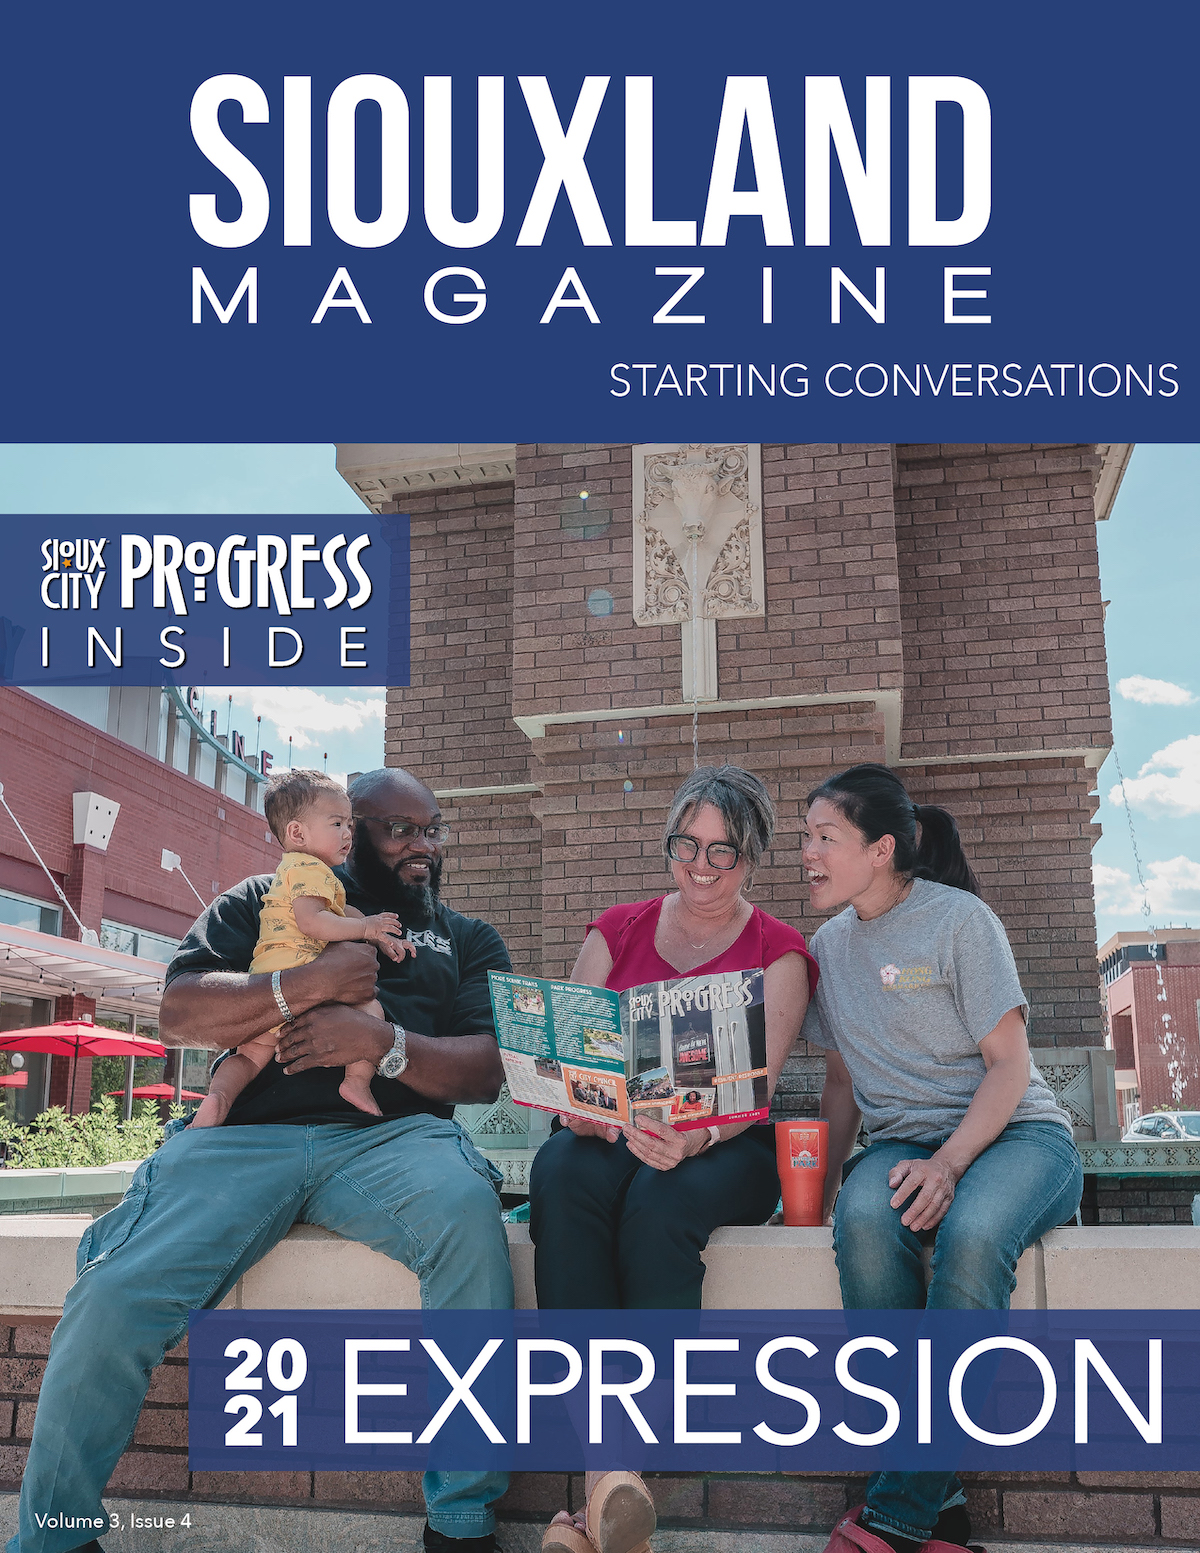 siouxland magazine july 2021 cover